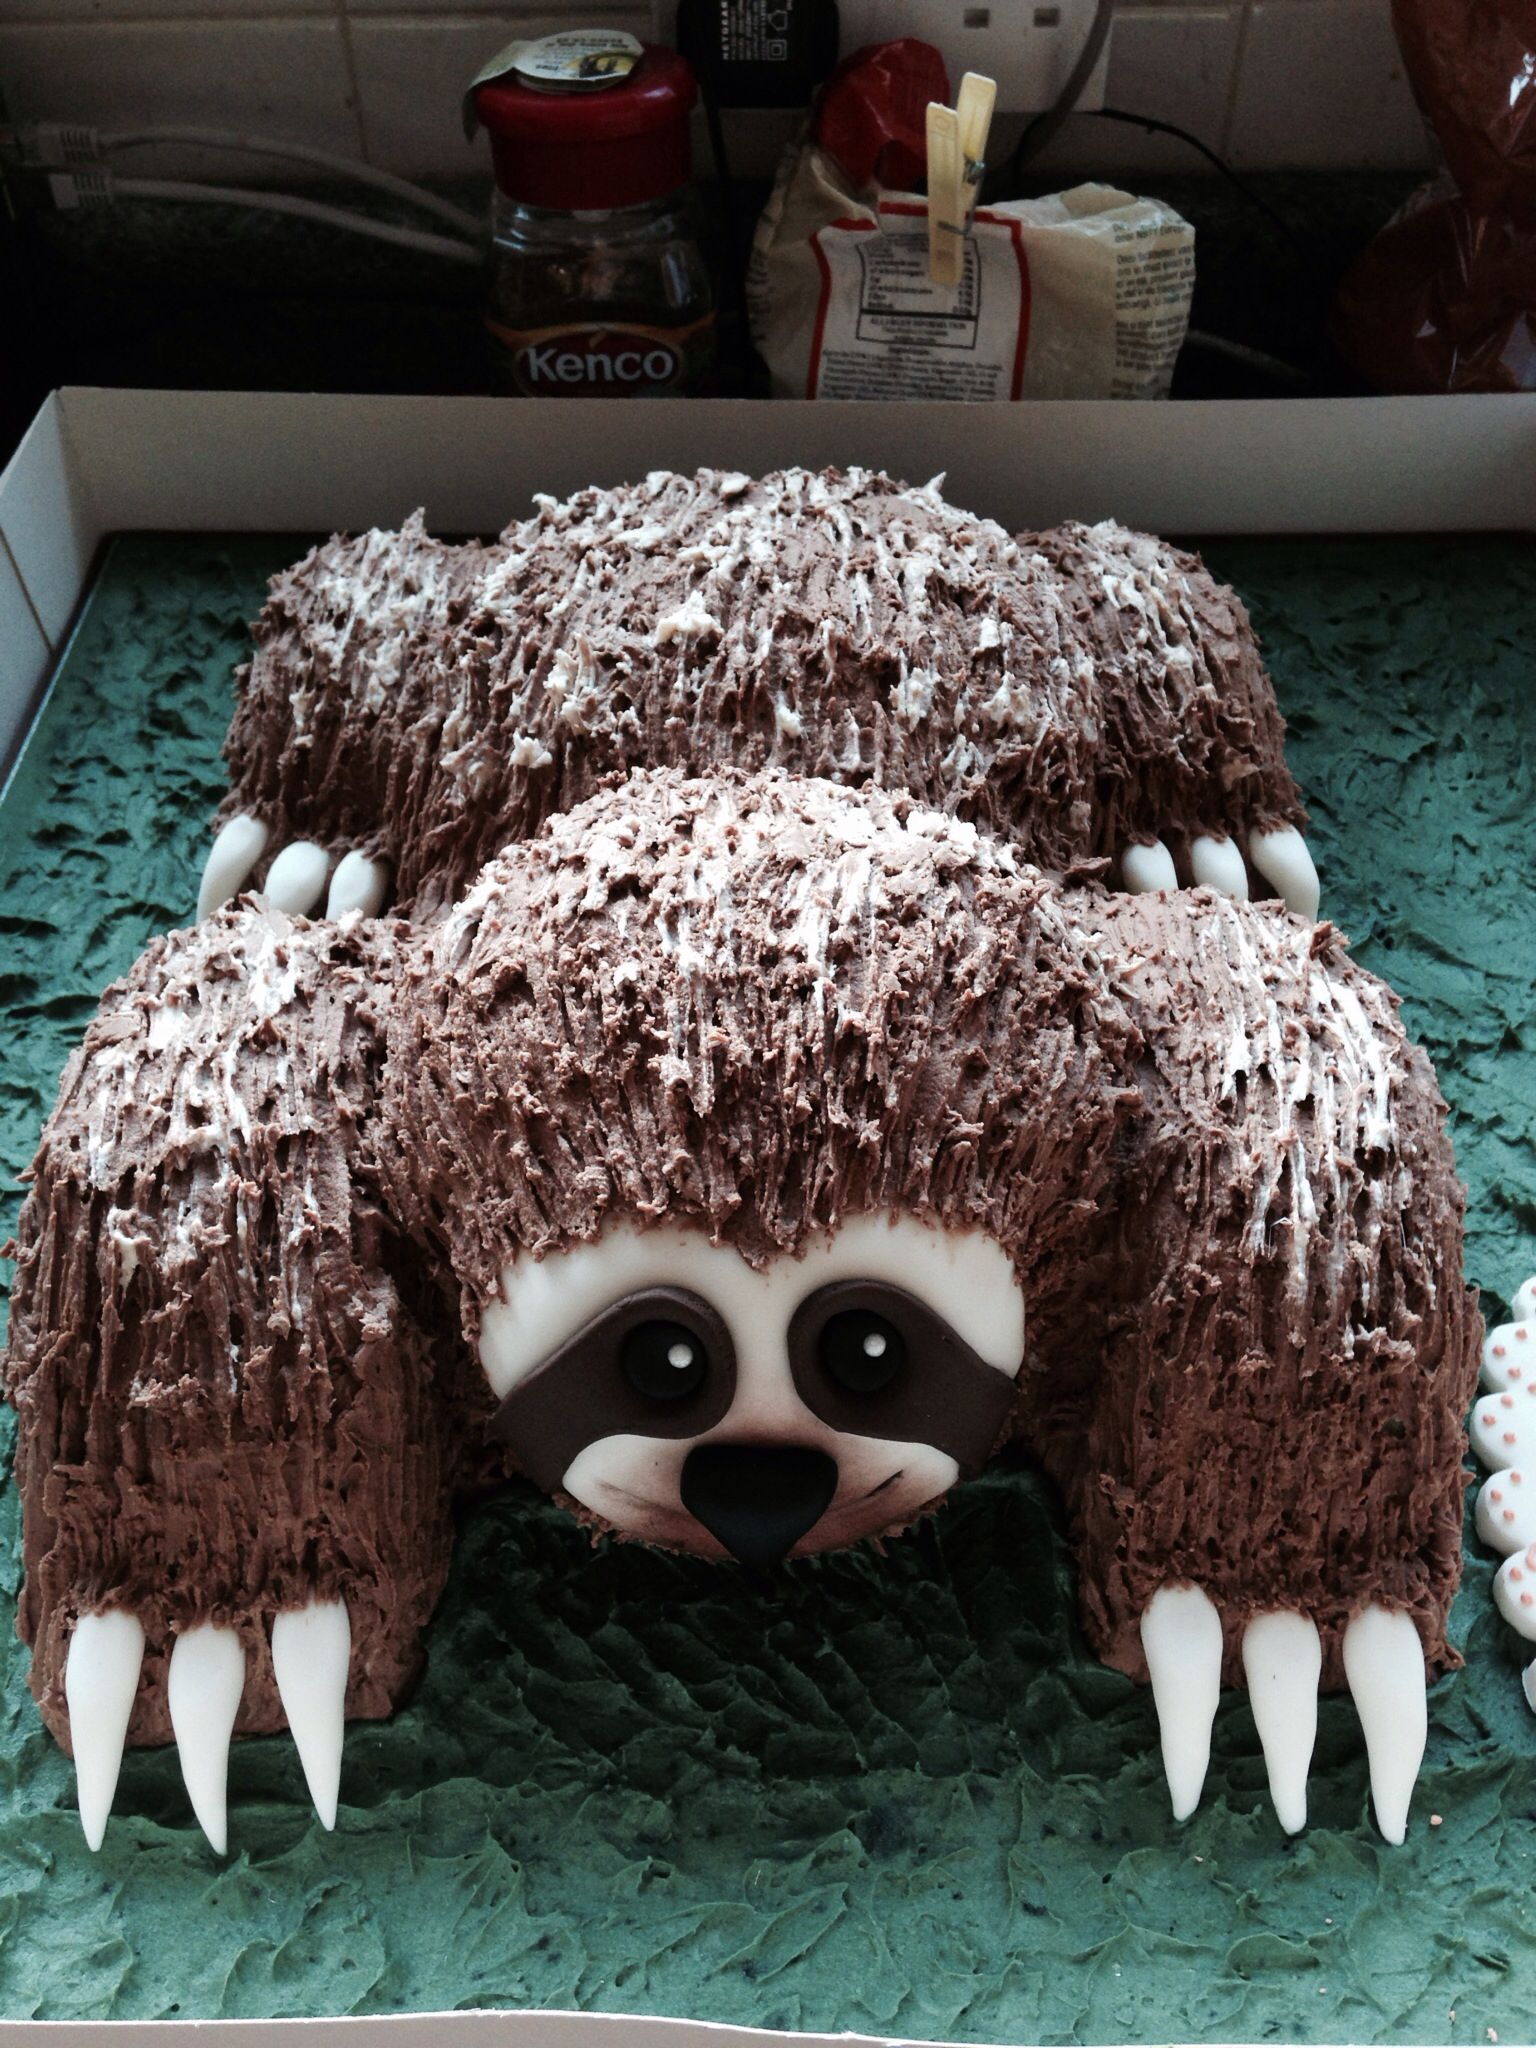 Amazing Sloth Birthday Cake For My 40th